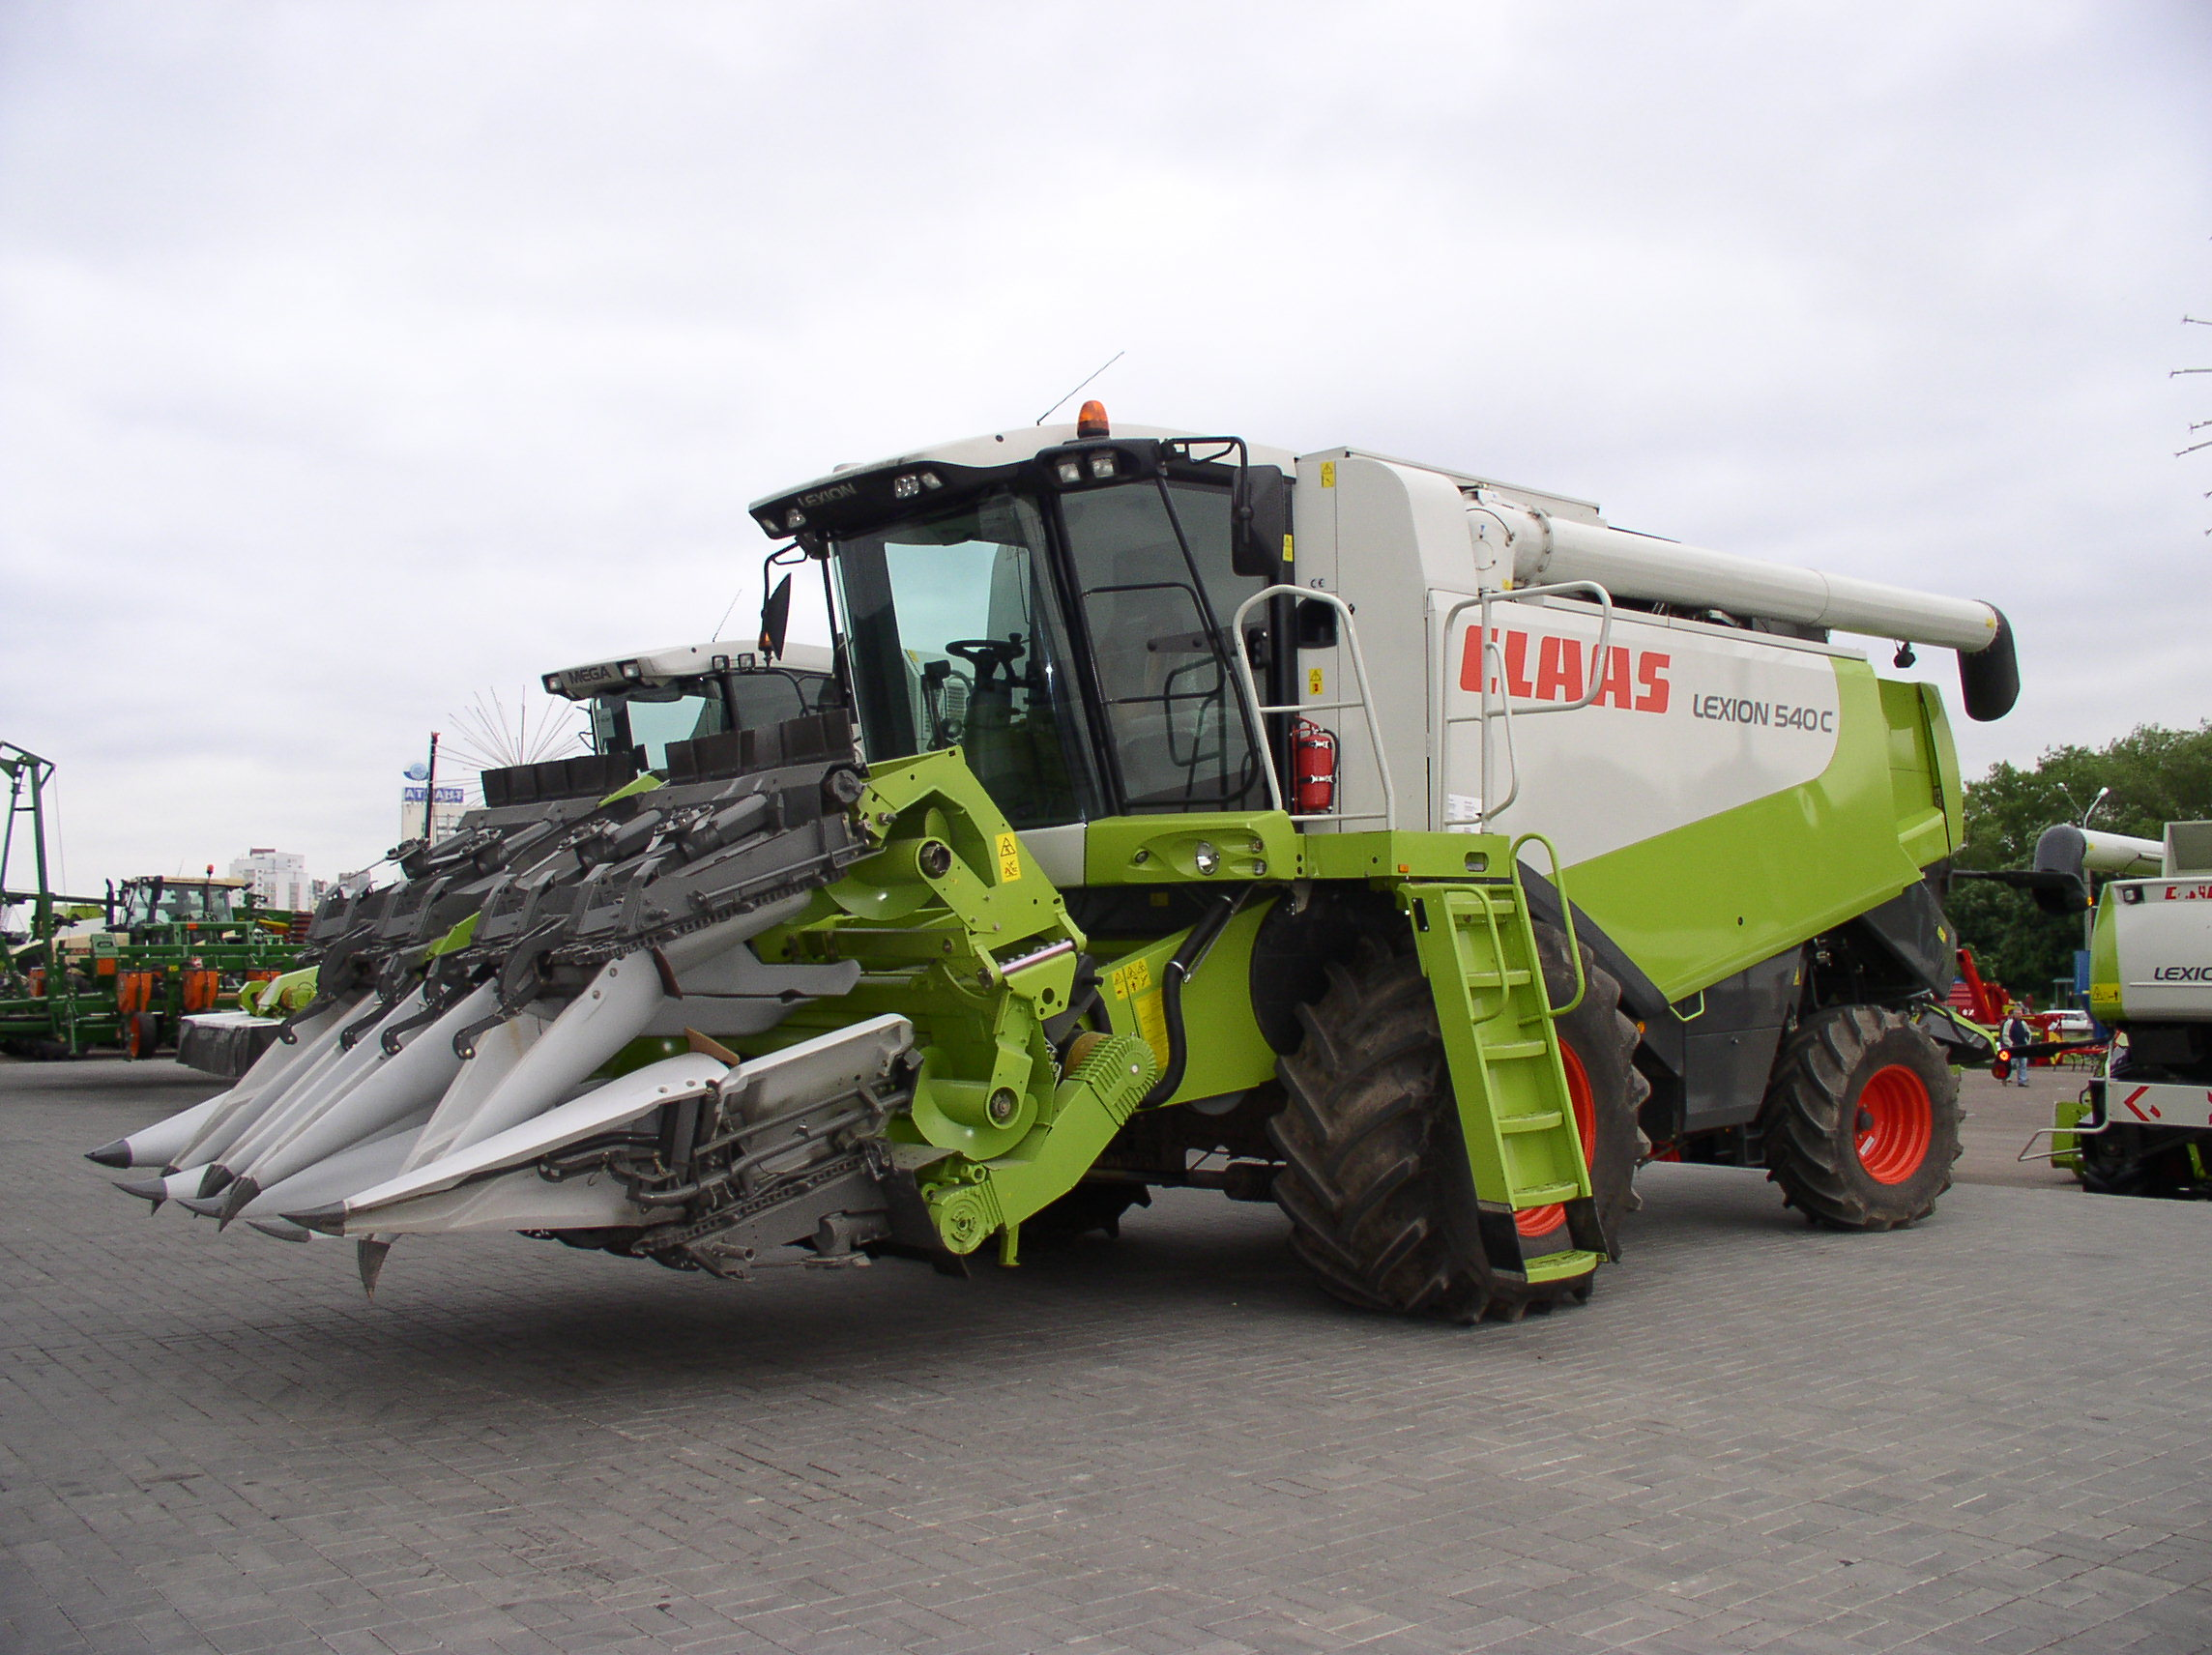 Claas lexion photo - 1